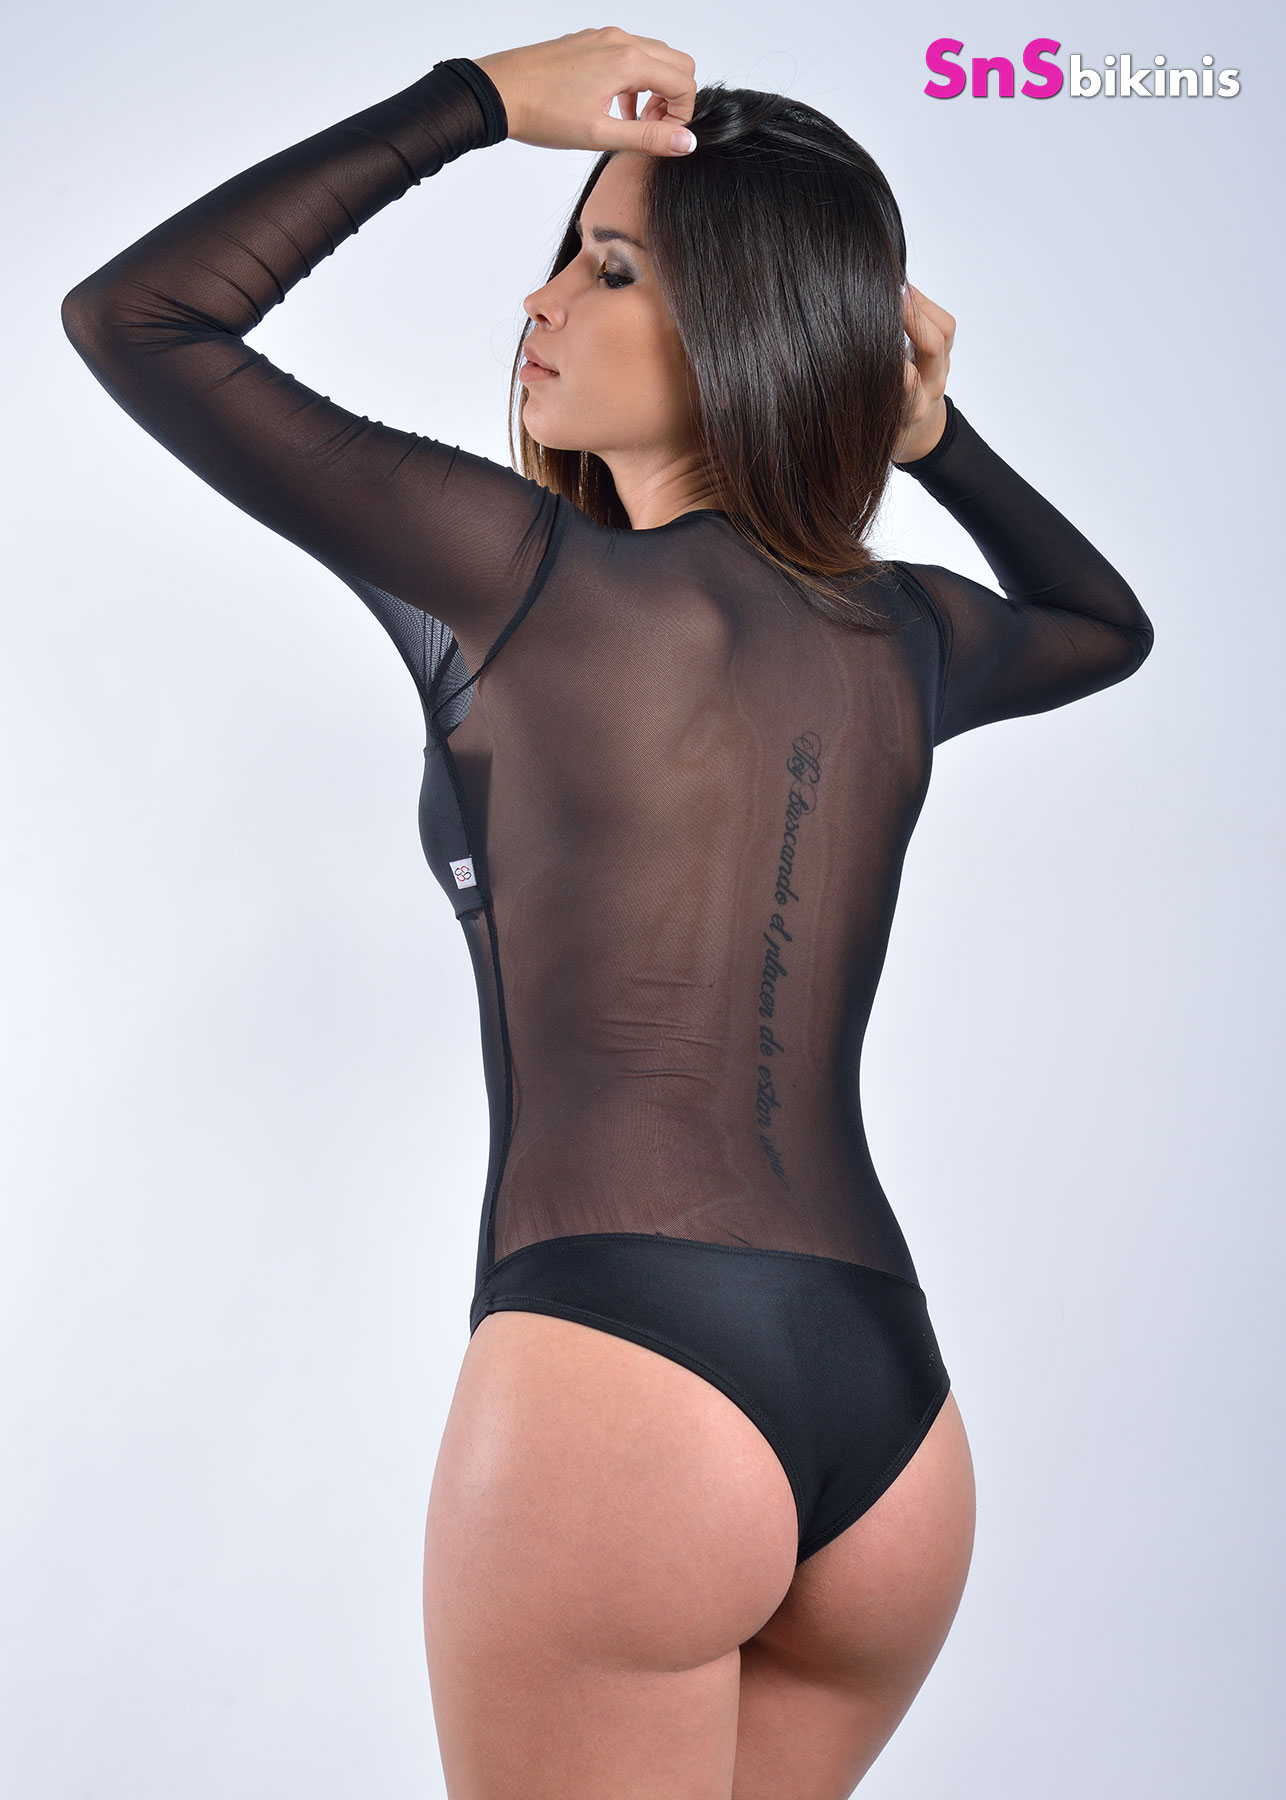 Show off your shape in the sensational range of bodysuits from Showpo. Spend $50 for FREE Express Shipping Australia wide (next day in metro areas!) Shop lace, crochet, satin and long sleeve options, and pair with skirts, shorts, pants or jeans. Wear now, pay later with AfterPay. 10% student discount!